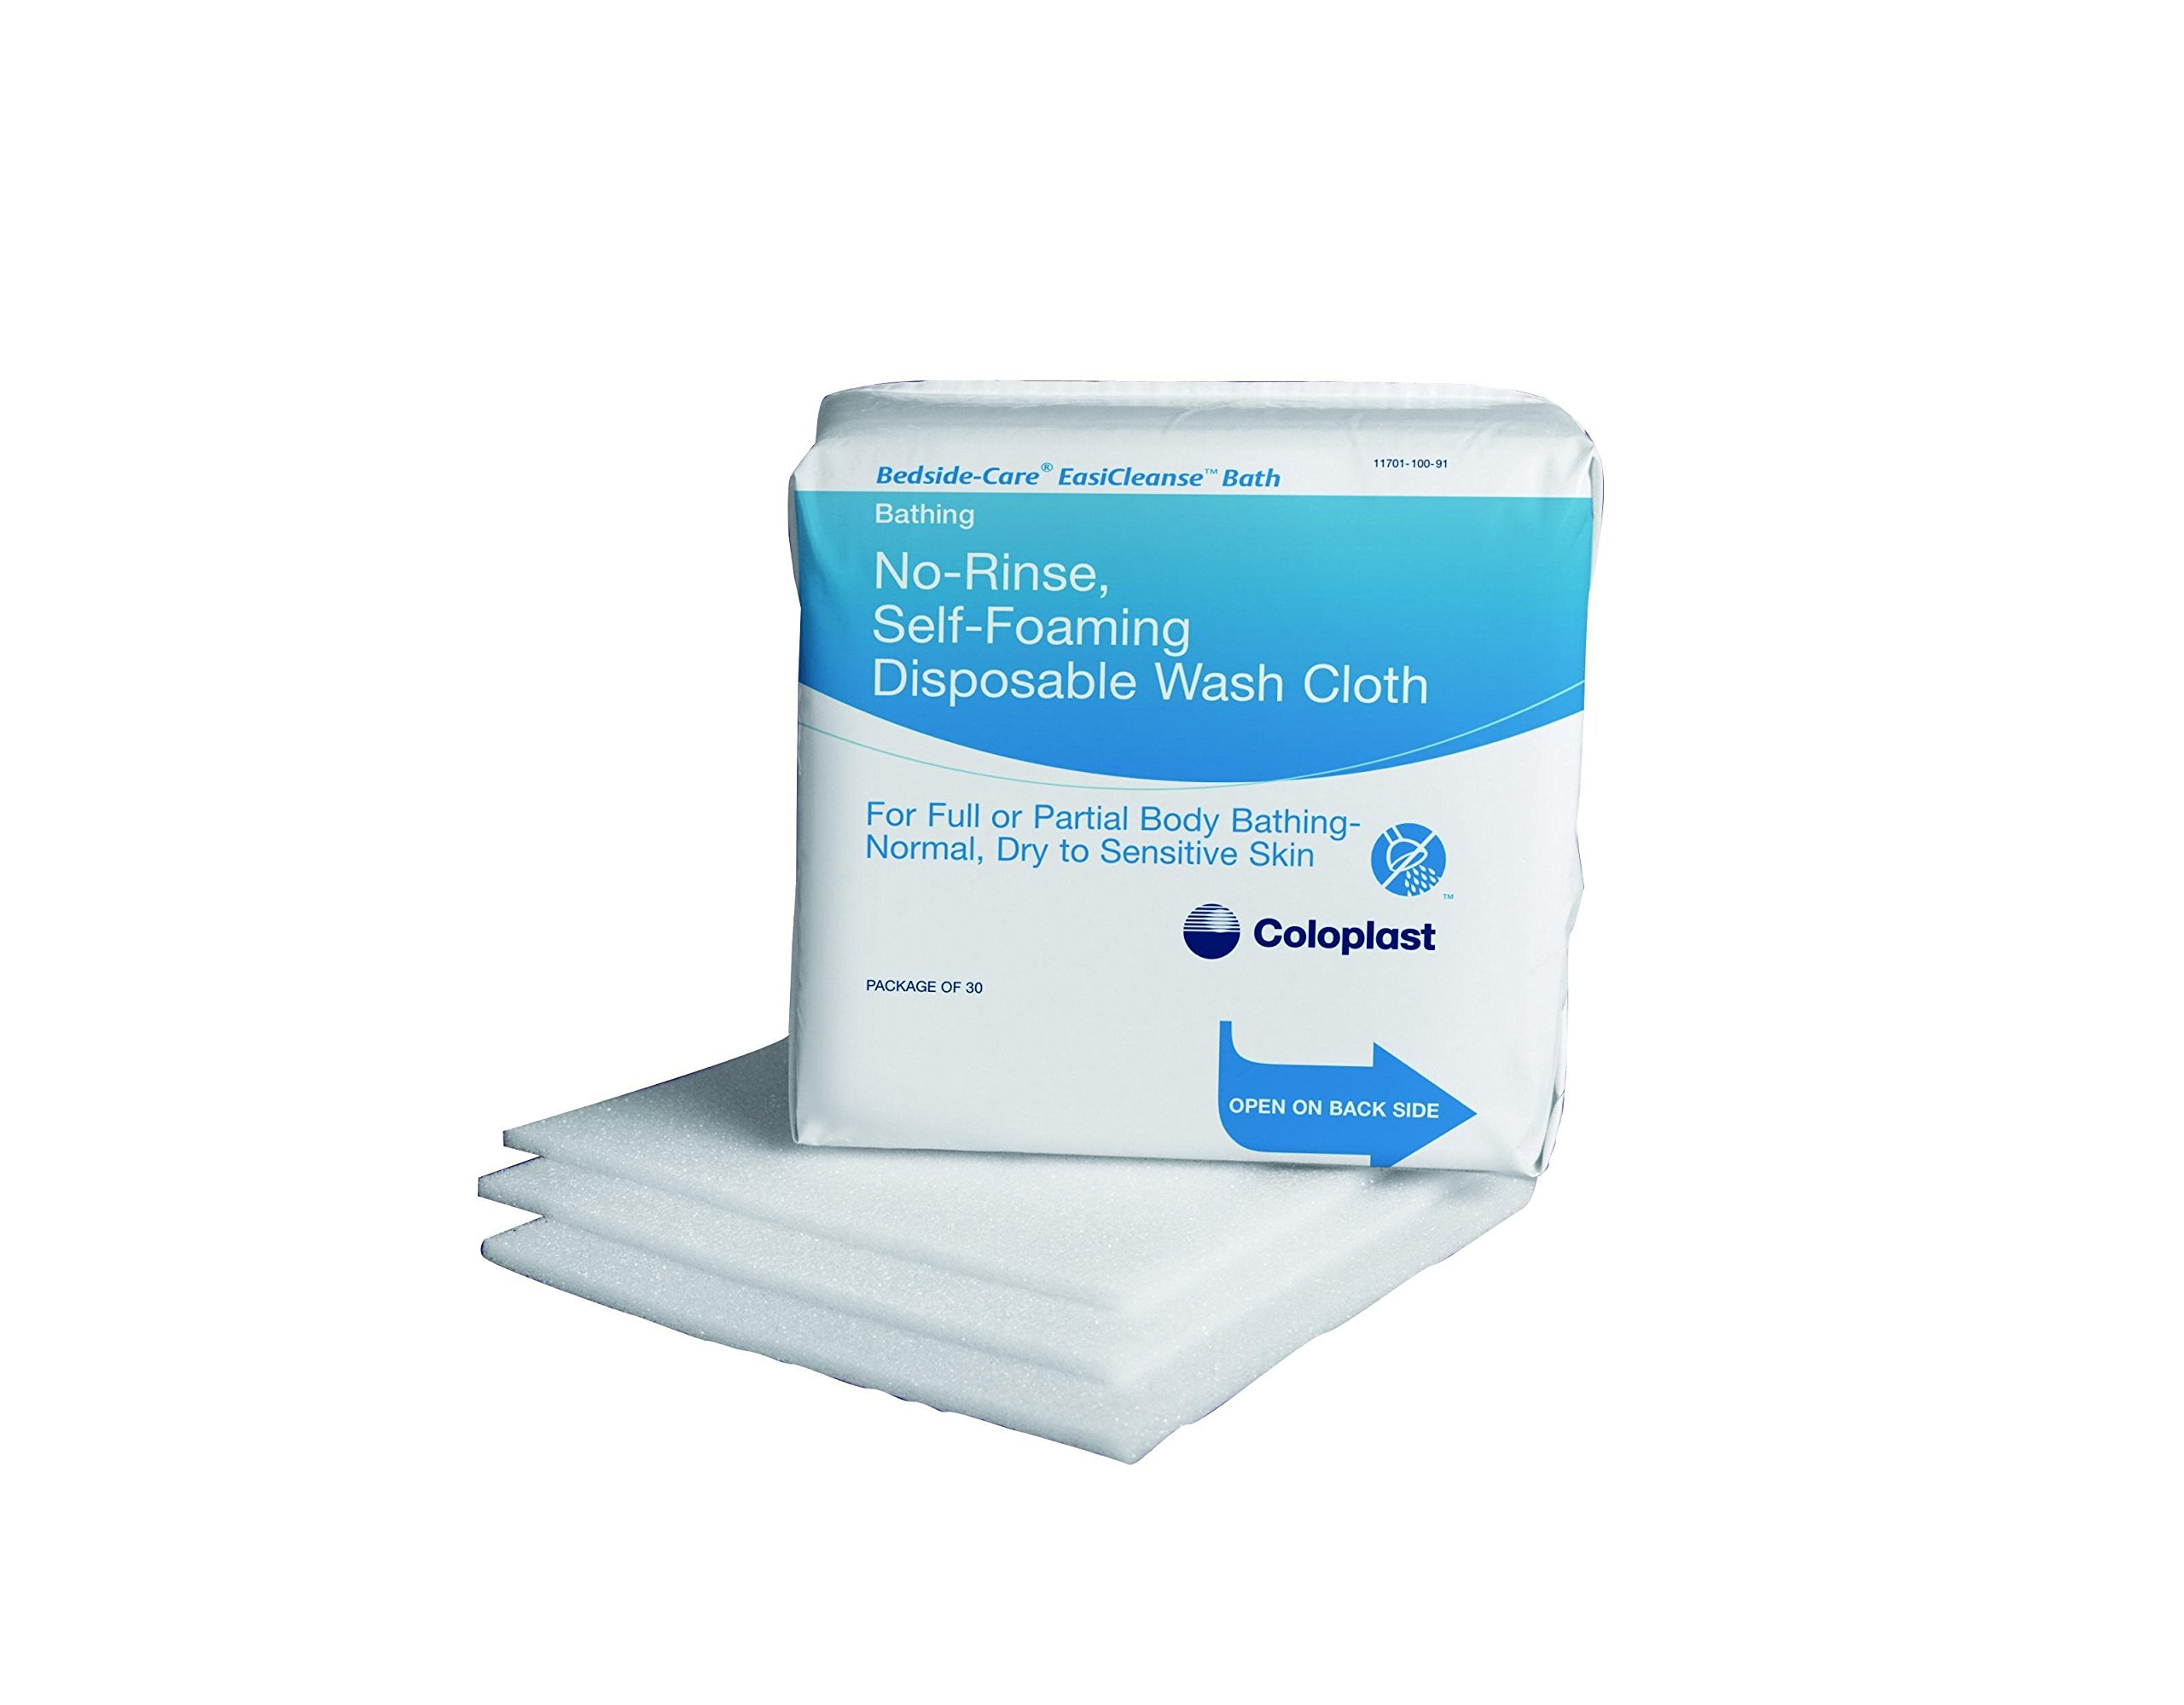 Easicleanse Skin Cloth Box of 30 by Coloplast